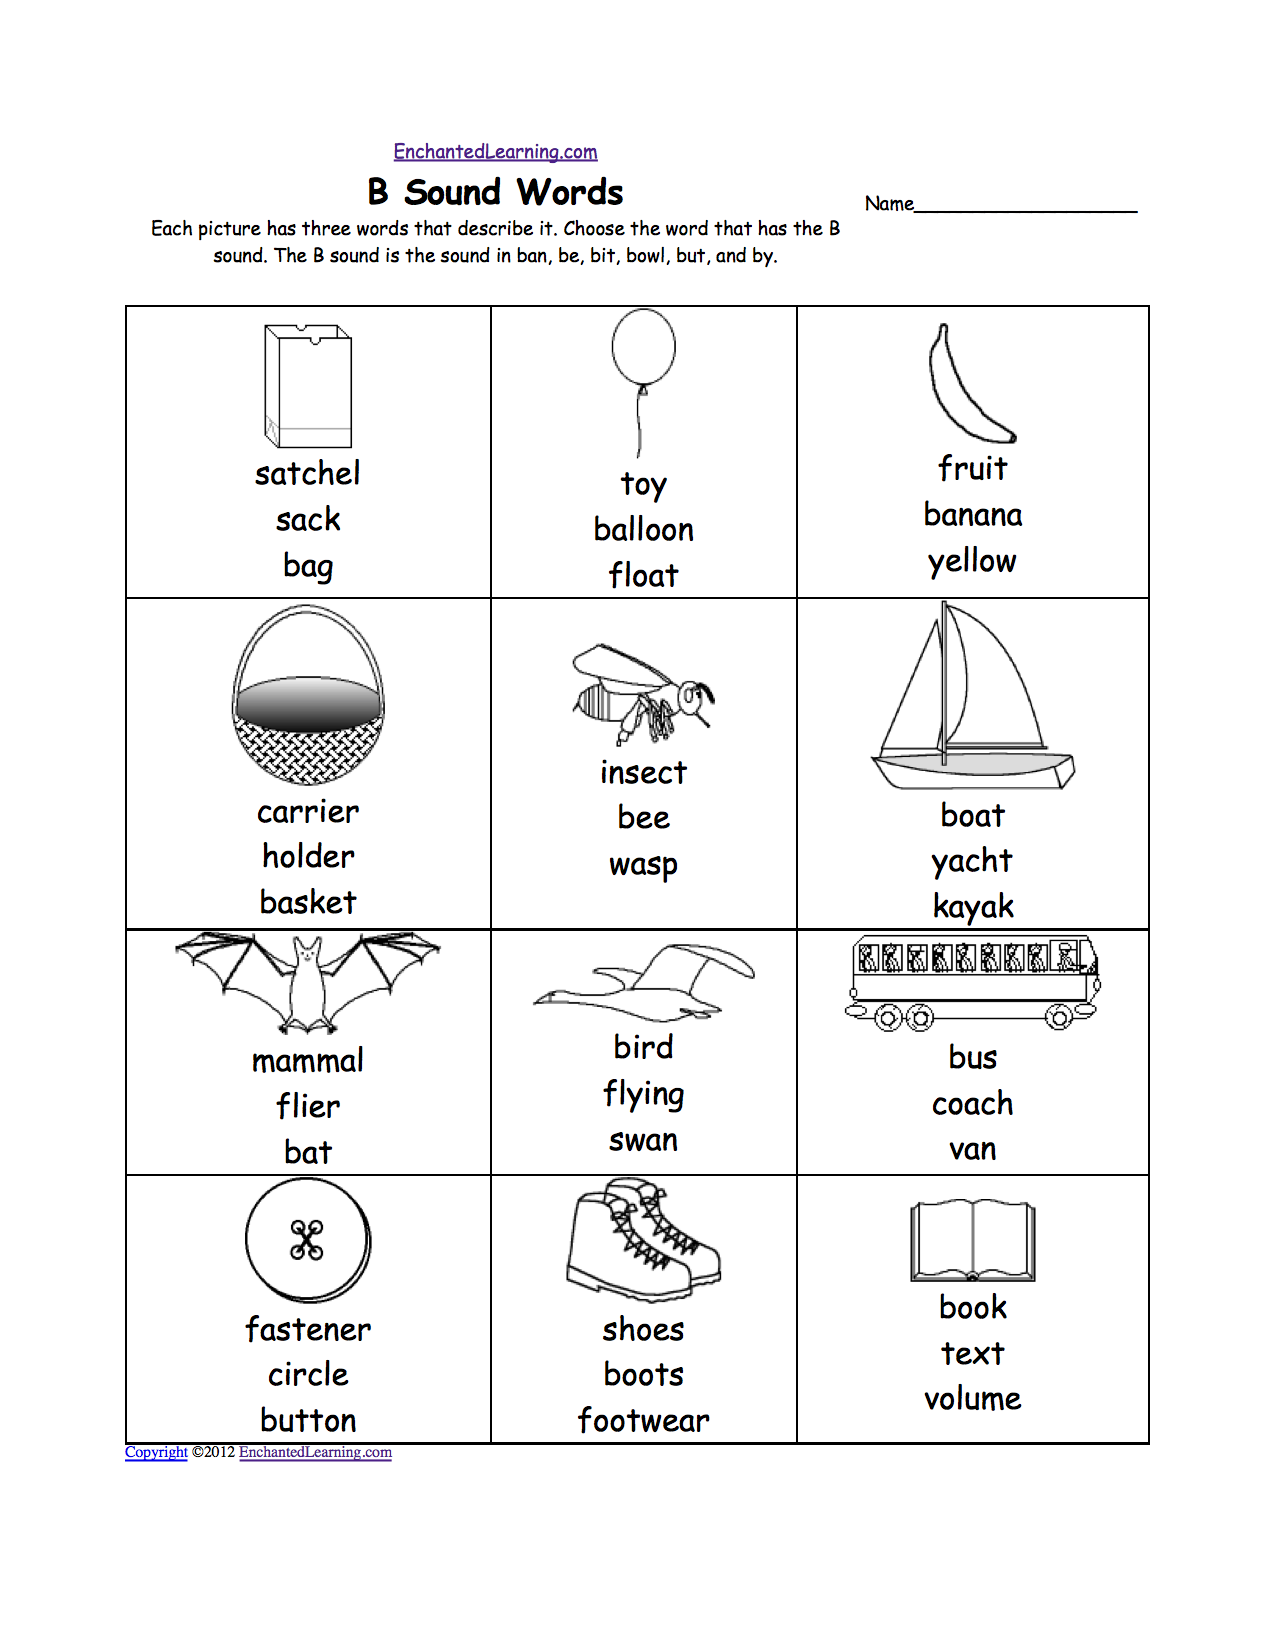 Weirdmailus  Scenic Phonics Worksheets Multiple Choice Worksheets To Print  With Hot Quotbquot Sound Phonics Worksheet Multiple Choice Each Picture Has Three Words That Describe It Choose The Word That Has A Quotbquot Sound The Quotbquot Sound Is The Sound  With Attractive Transversal Lines Worksheet Also Rd Grade Math Worksheets Word Problems In Addition Free English Grammar Worksheets And Esl Conversation Worksheets As Well As Menu Planning Worksheet Additionally Derivative Worksheet With Answers From Enchantedlearningcom With Weirdmailus  Hot Phonics Worksheets Multiple Choice Worksheets To Print  With Attractive Quotbquot Sound Phonics Worksheet Multiple Choice Each Picture Has Three Words That Describe It Choose The Word That Has A Quotbquot Sound The Quotbquot Sound Is The Sound  And Scenic Transversal Lines Worksheet Also Rd Grade Math Worksheets Word Problems In Addition Free English Grammar Worksheets From Enchantedlearningcom